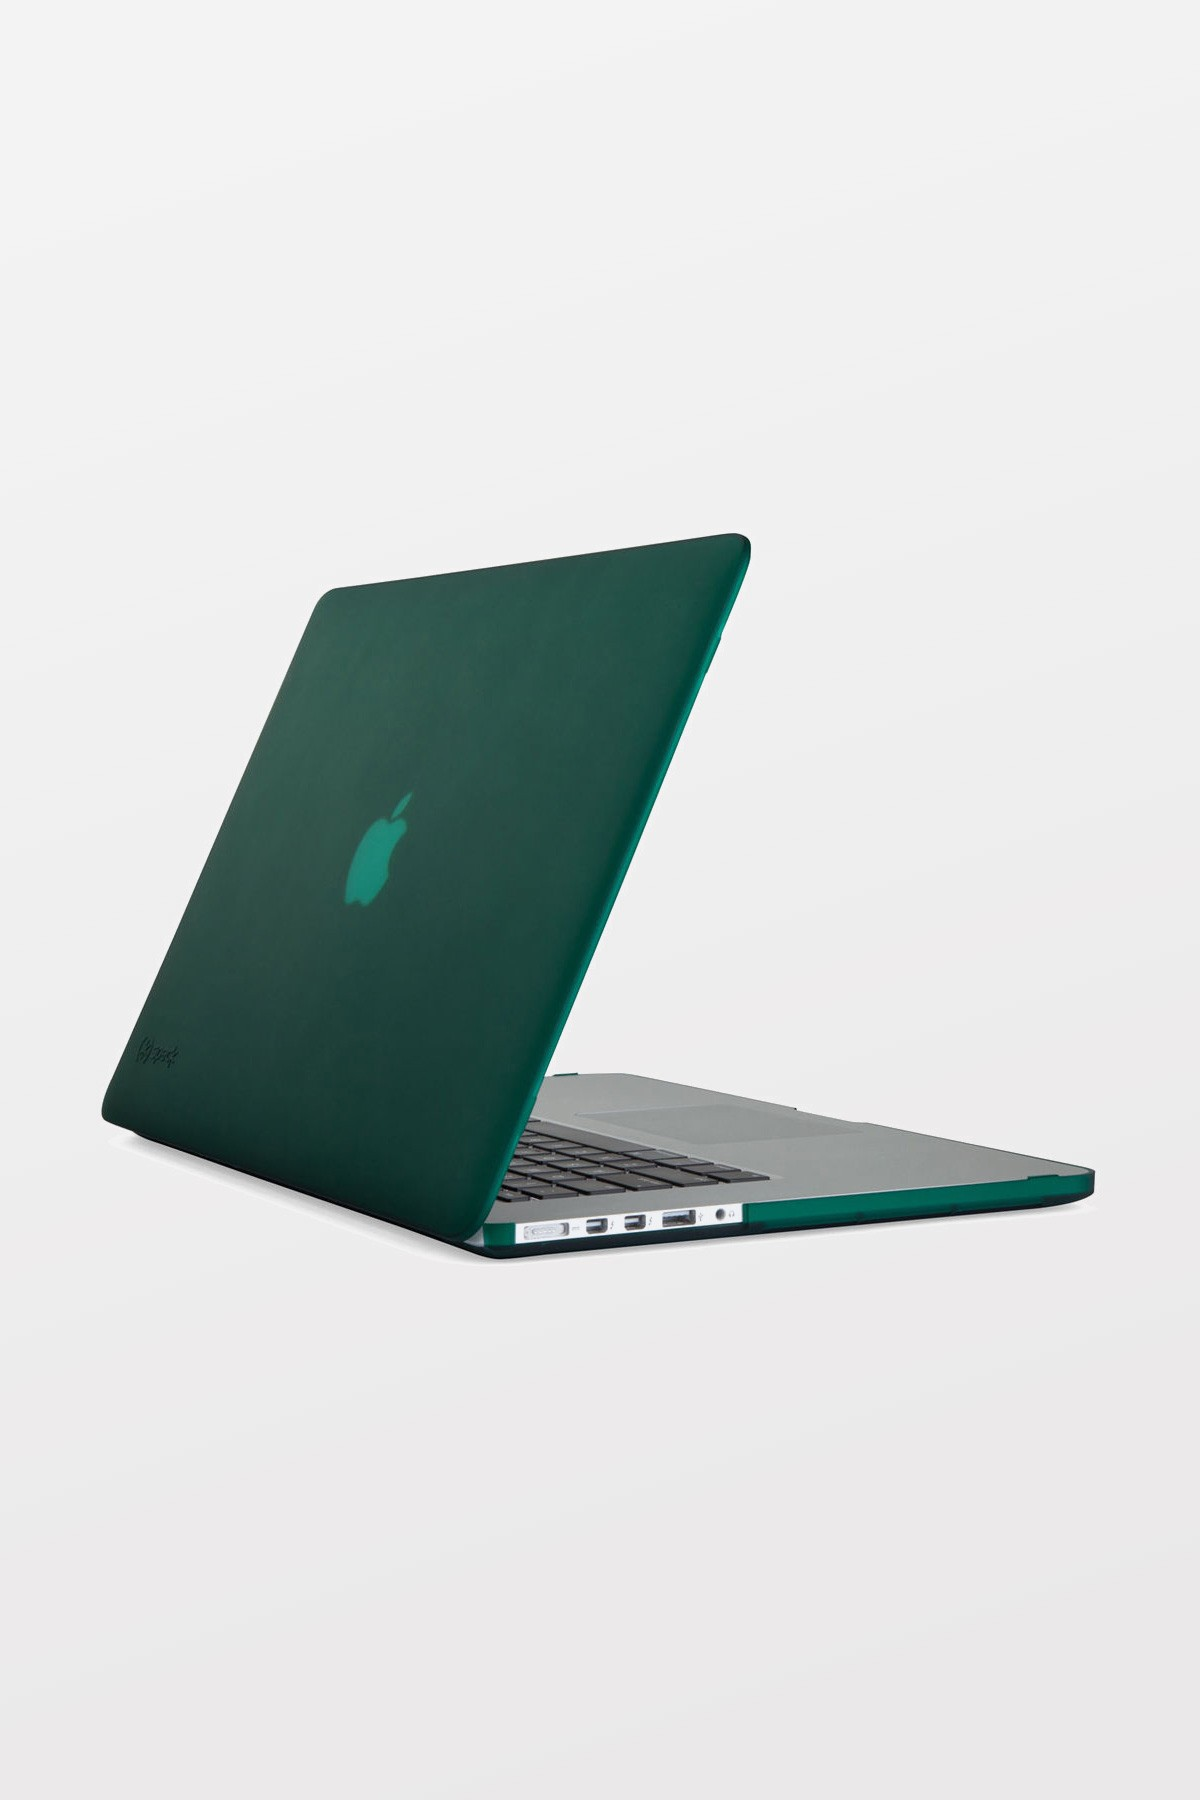 Speck MacBook Pro 15-inch SeeThru Satin Malachite